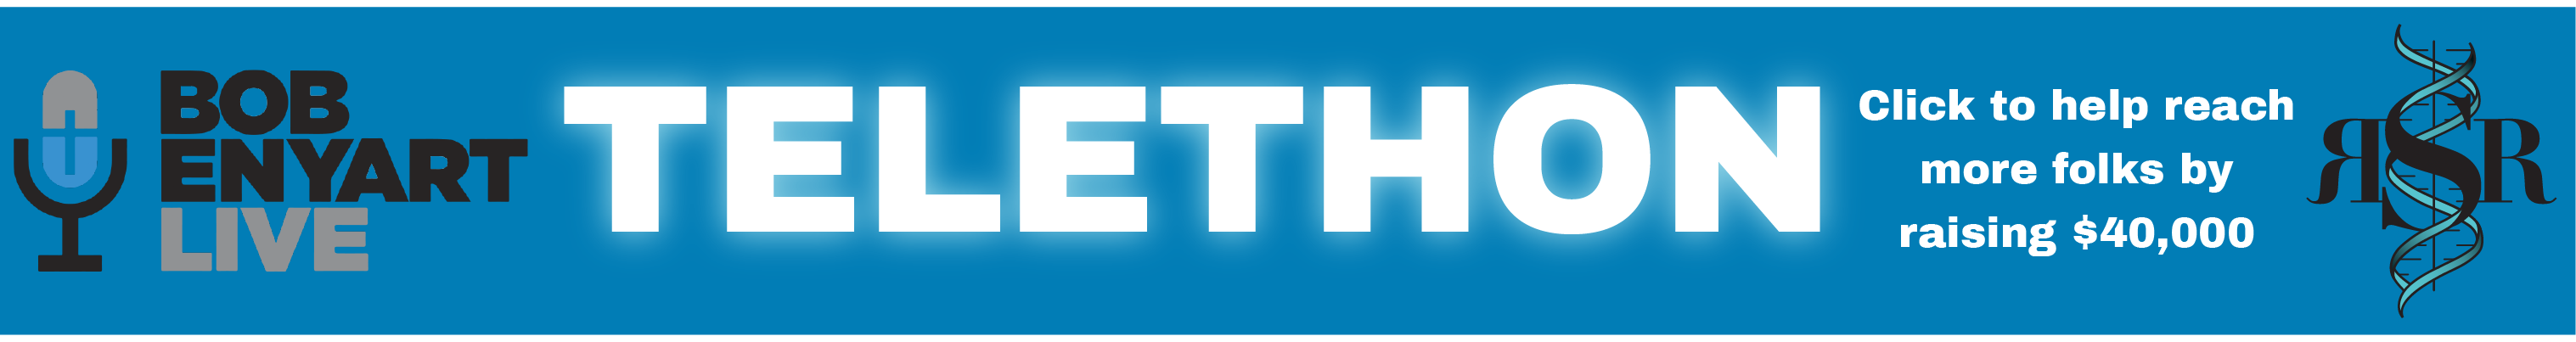 Telethon%20Banner%20with%20Glow.png